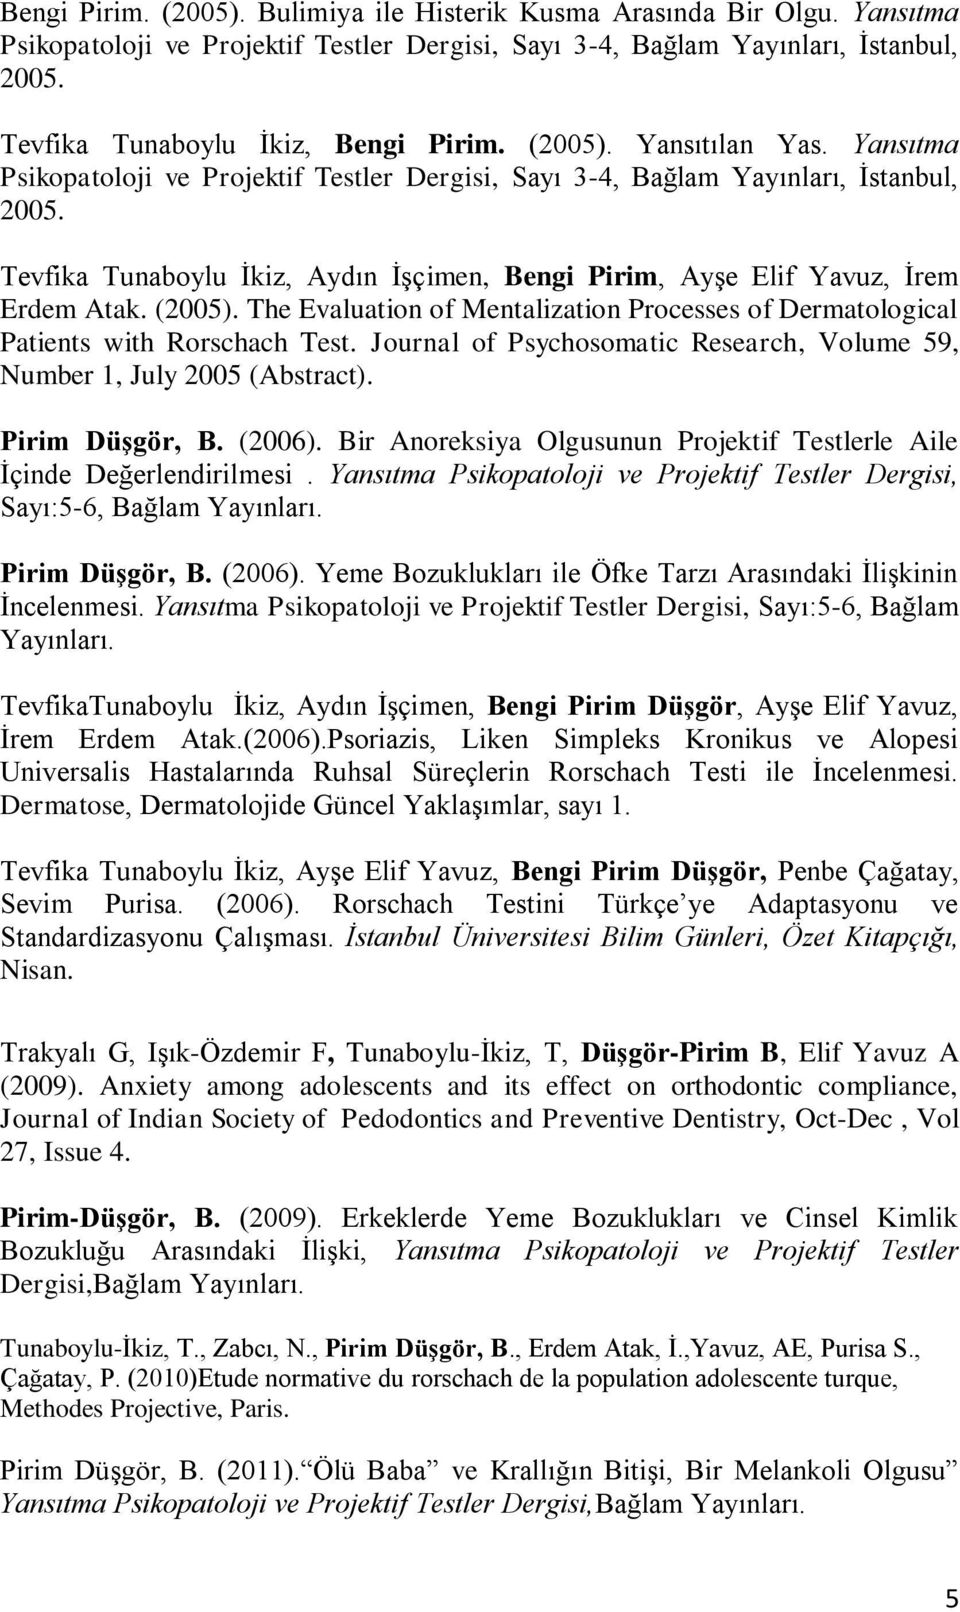 Tevfika Tunaboylu İkiz, Aydın İşçimen, Bengi Pirim, Ayşe Elif Yavuz, İrem Erdem Atak. (2005). The Evaluation of Mentalization Processes of Dermatological Patients with Rorschach Test.